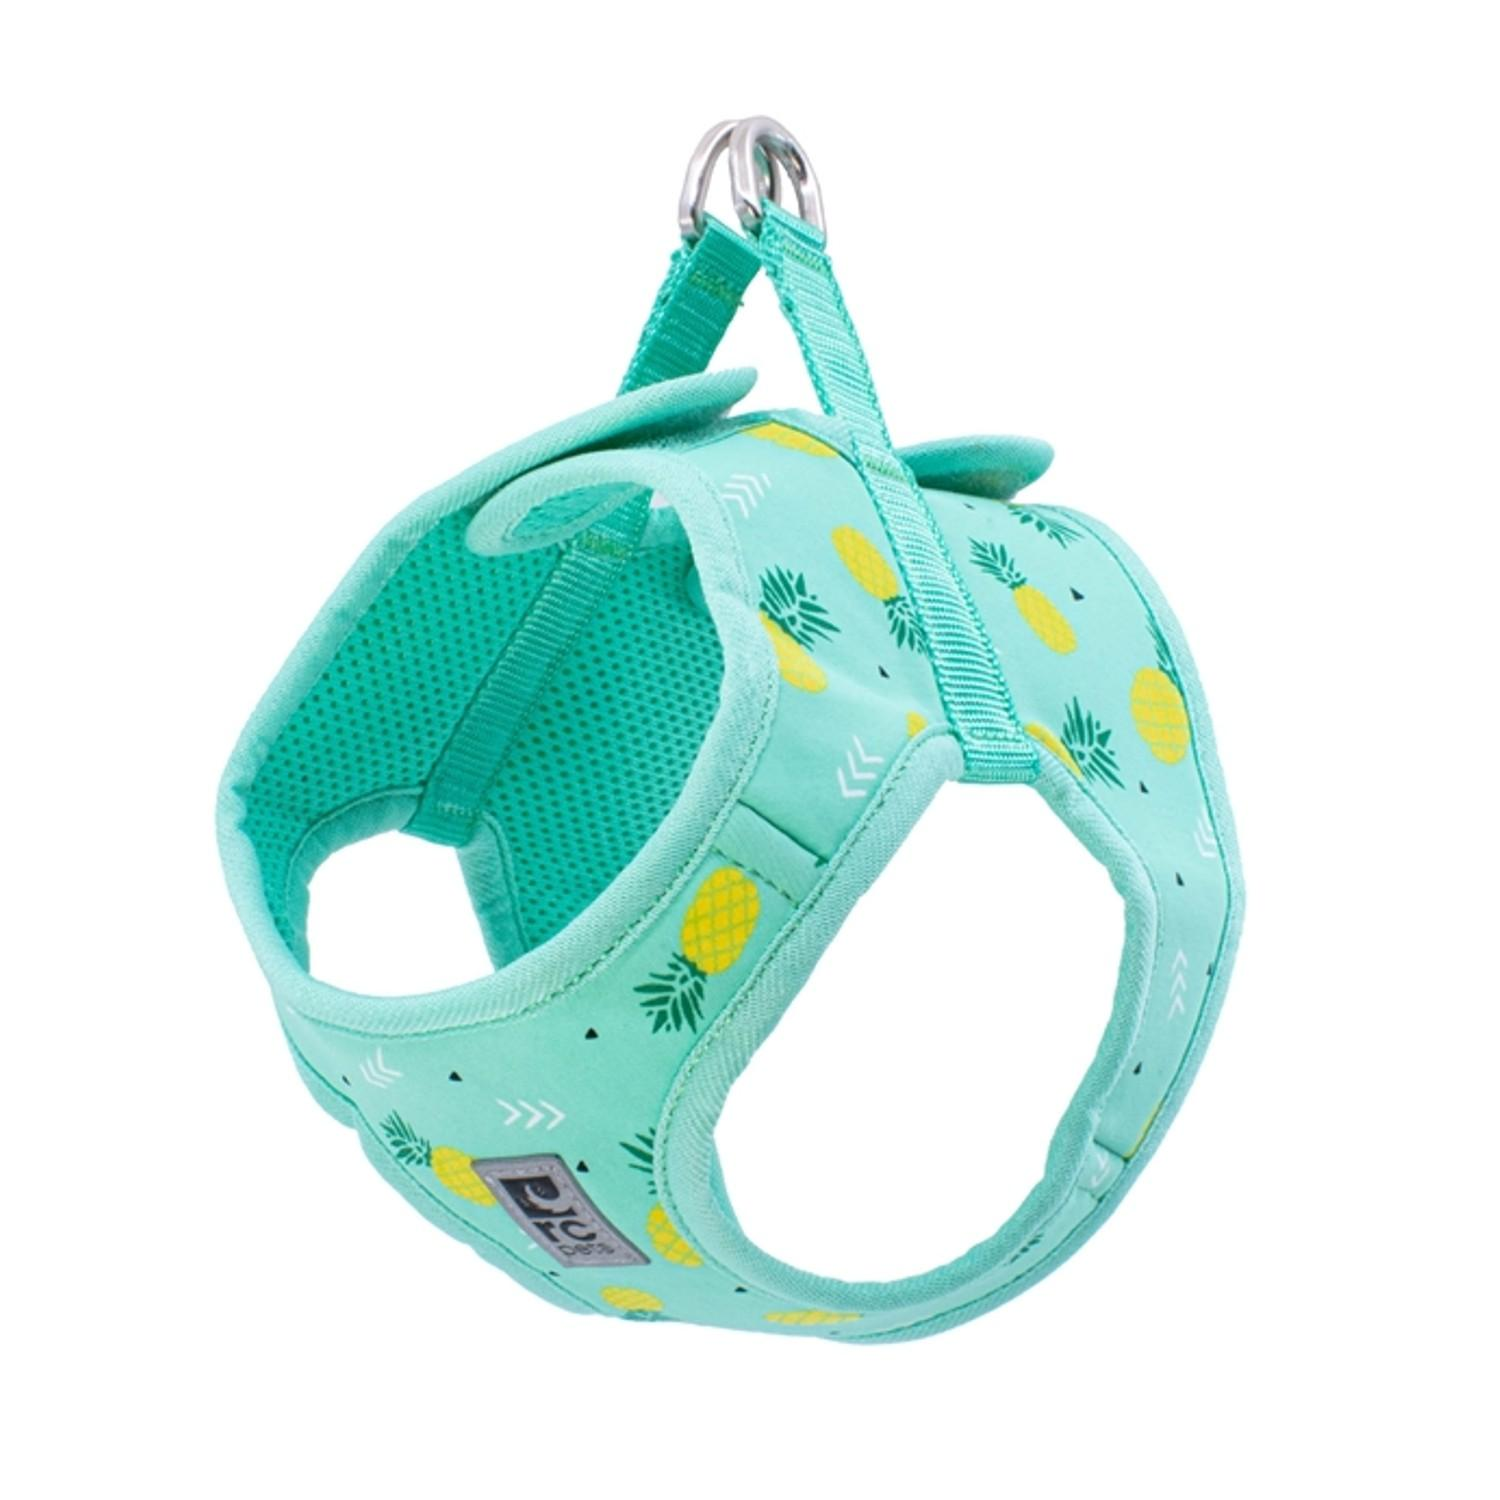 Step-in Cirque Dog Harness - Pineapple Parade